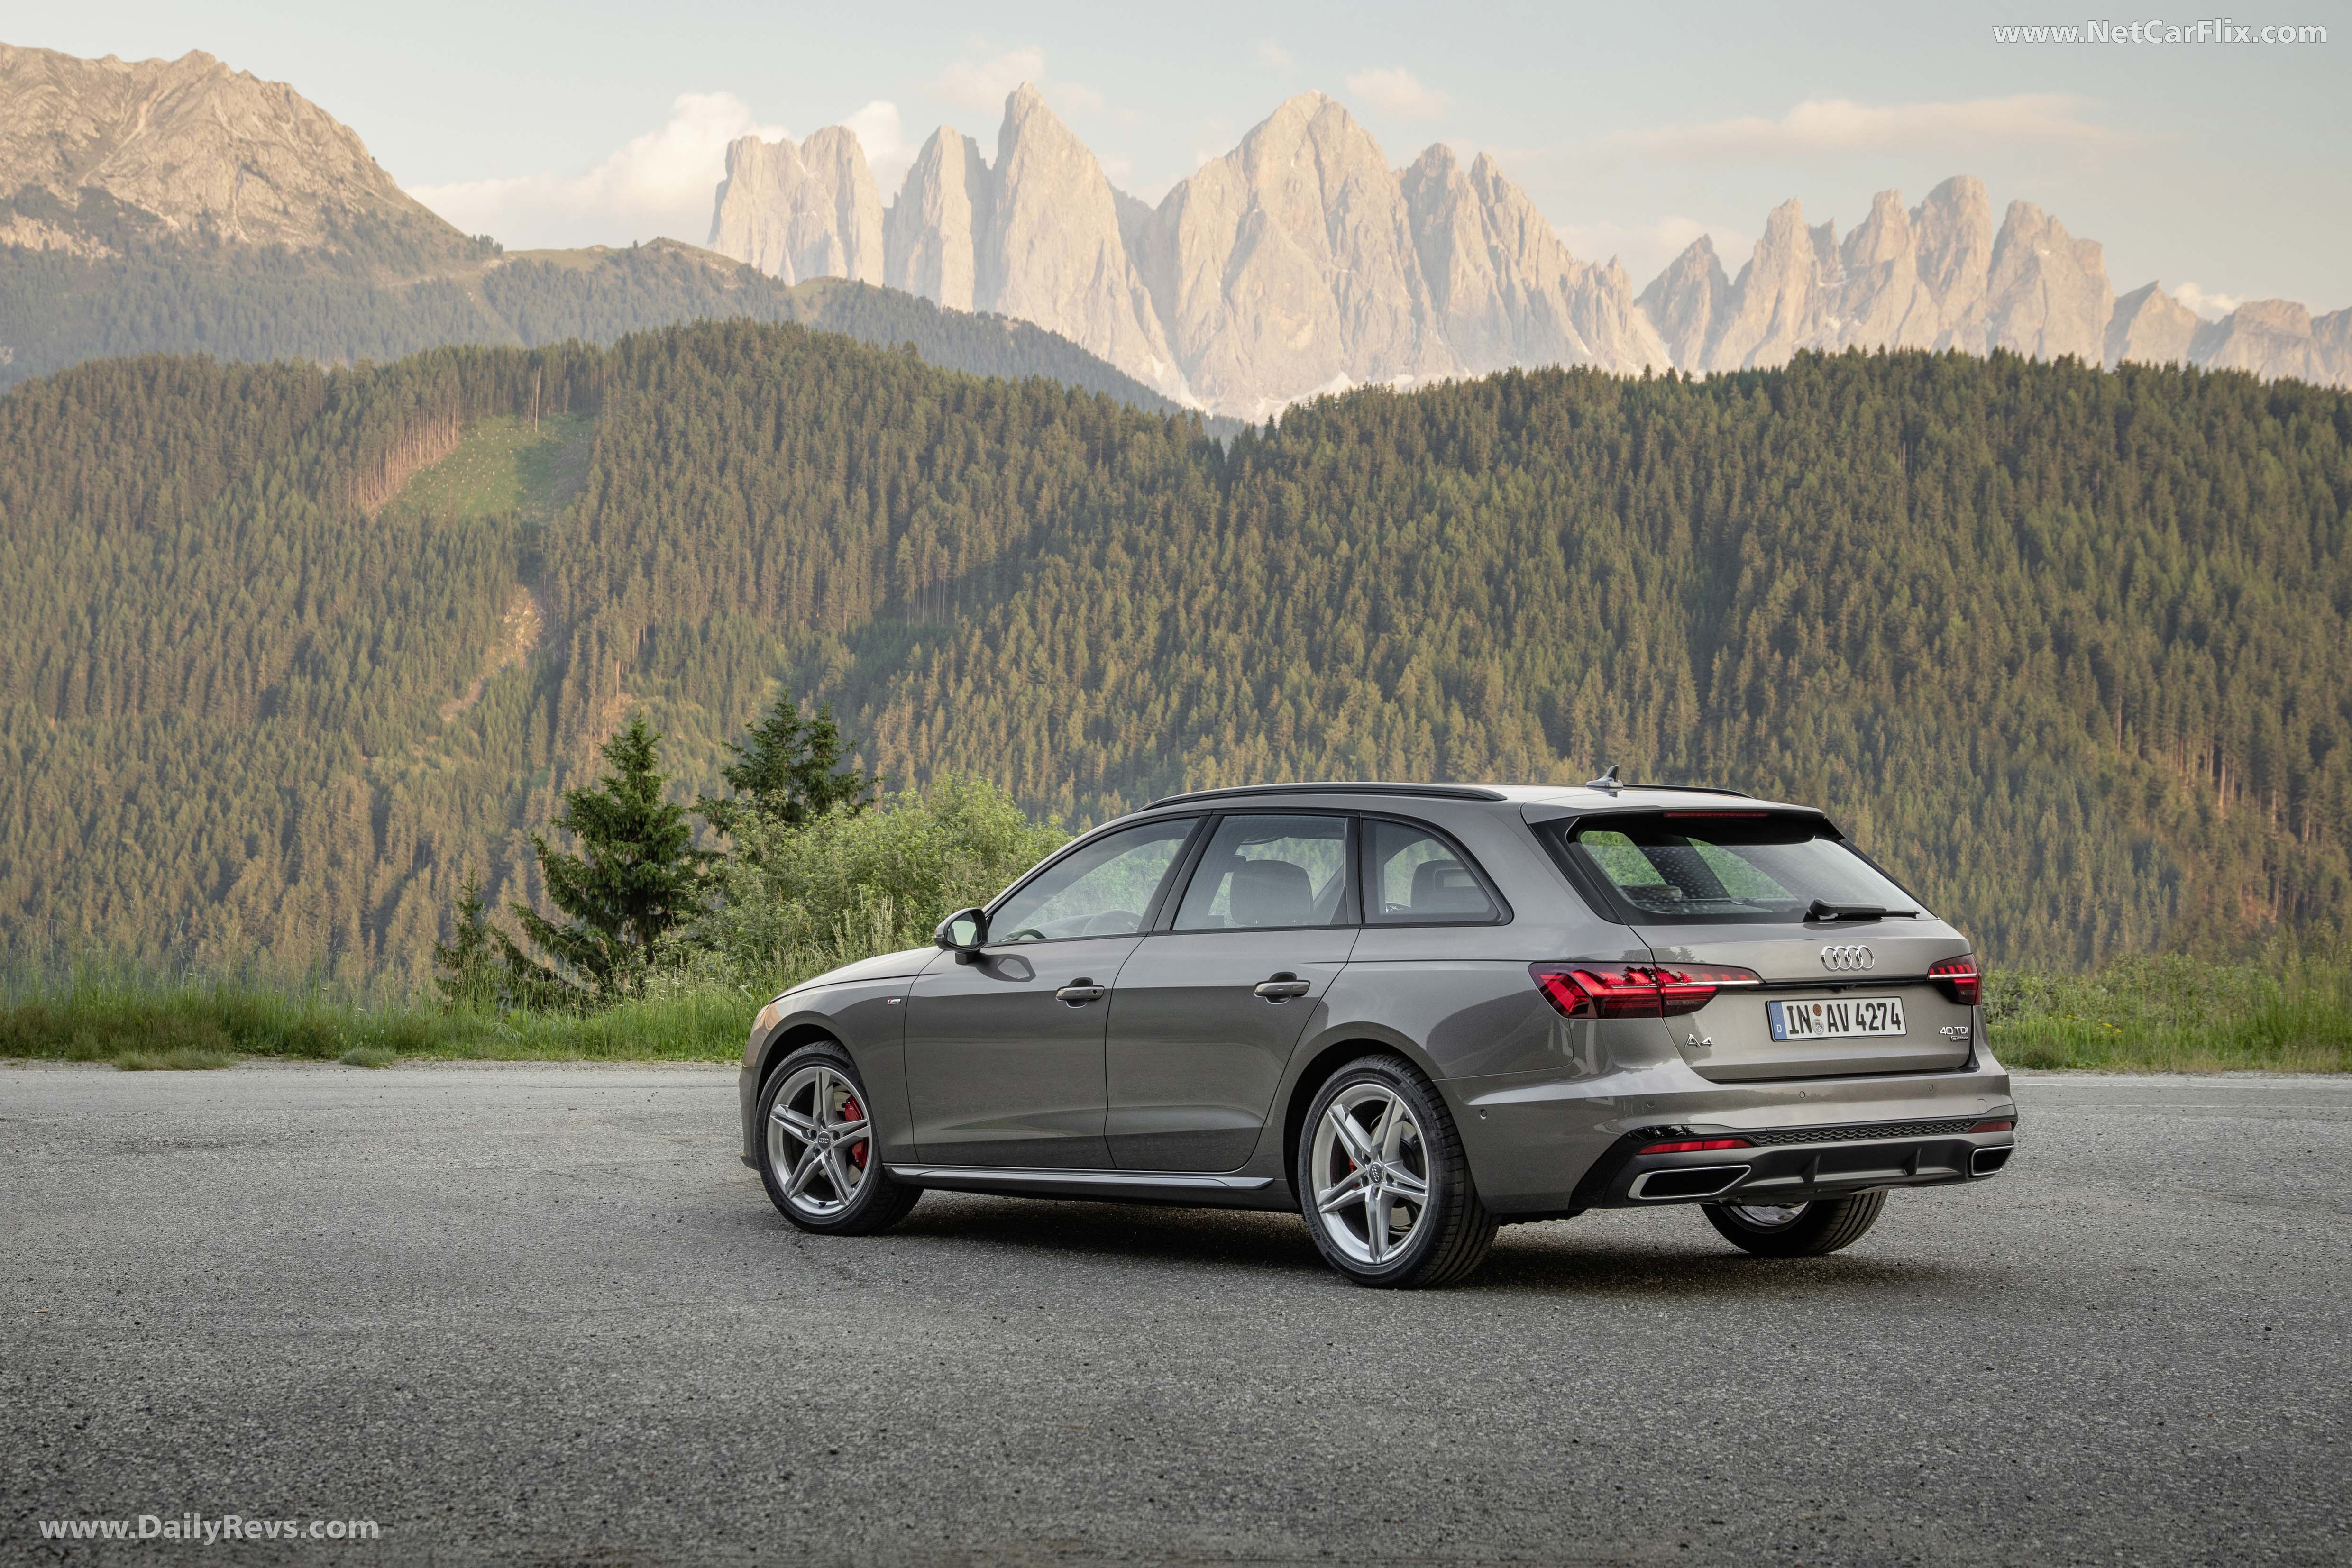 2020 Audi A4 Avant - Pictures. Images. Photos & Wallpapers - Dailyrevs